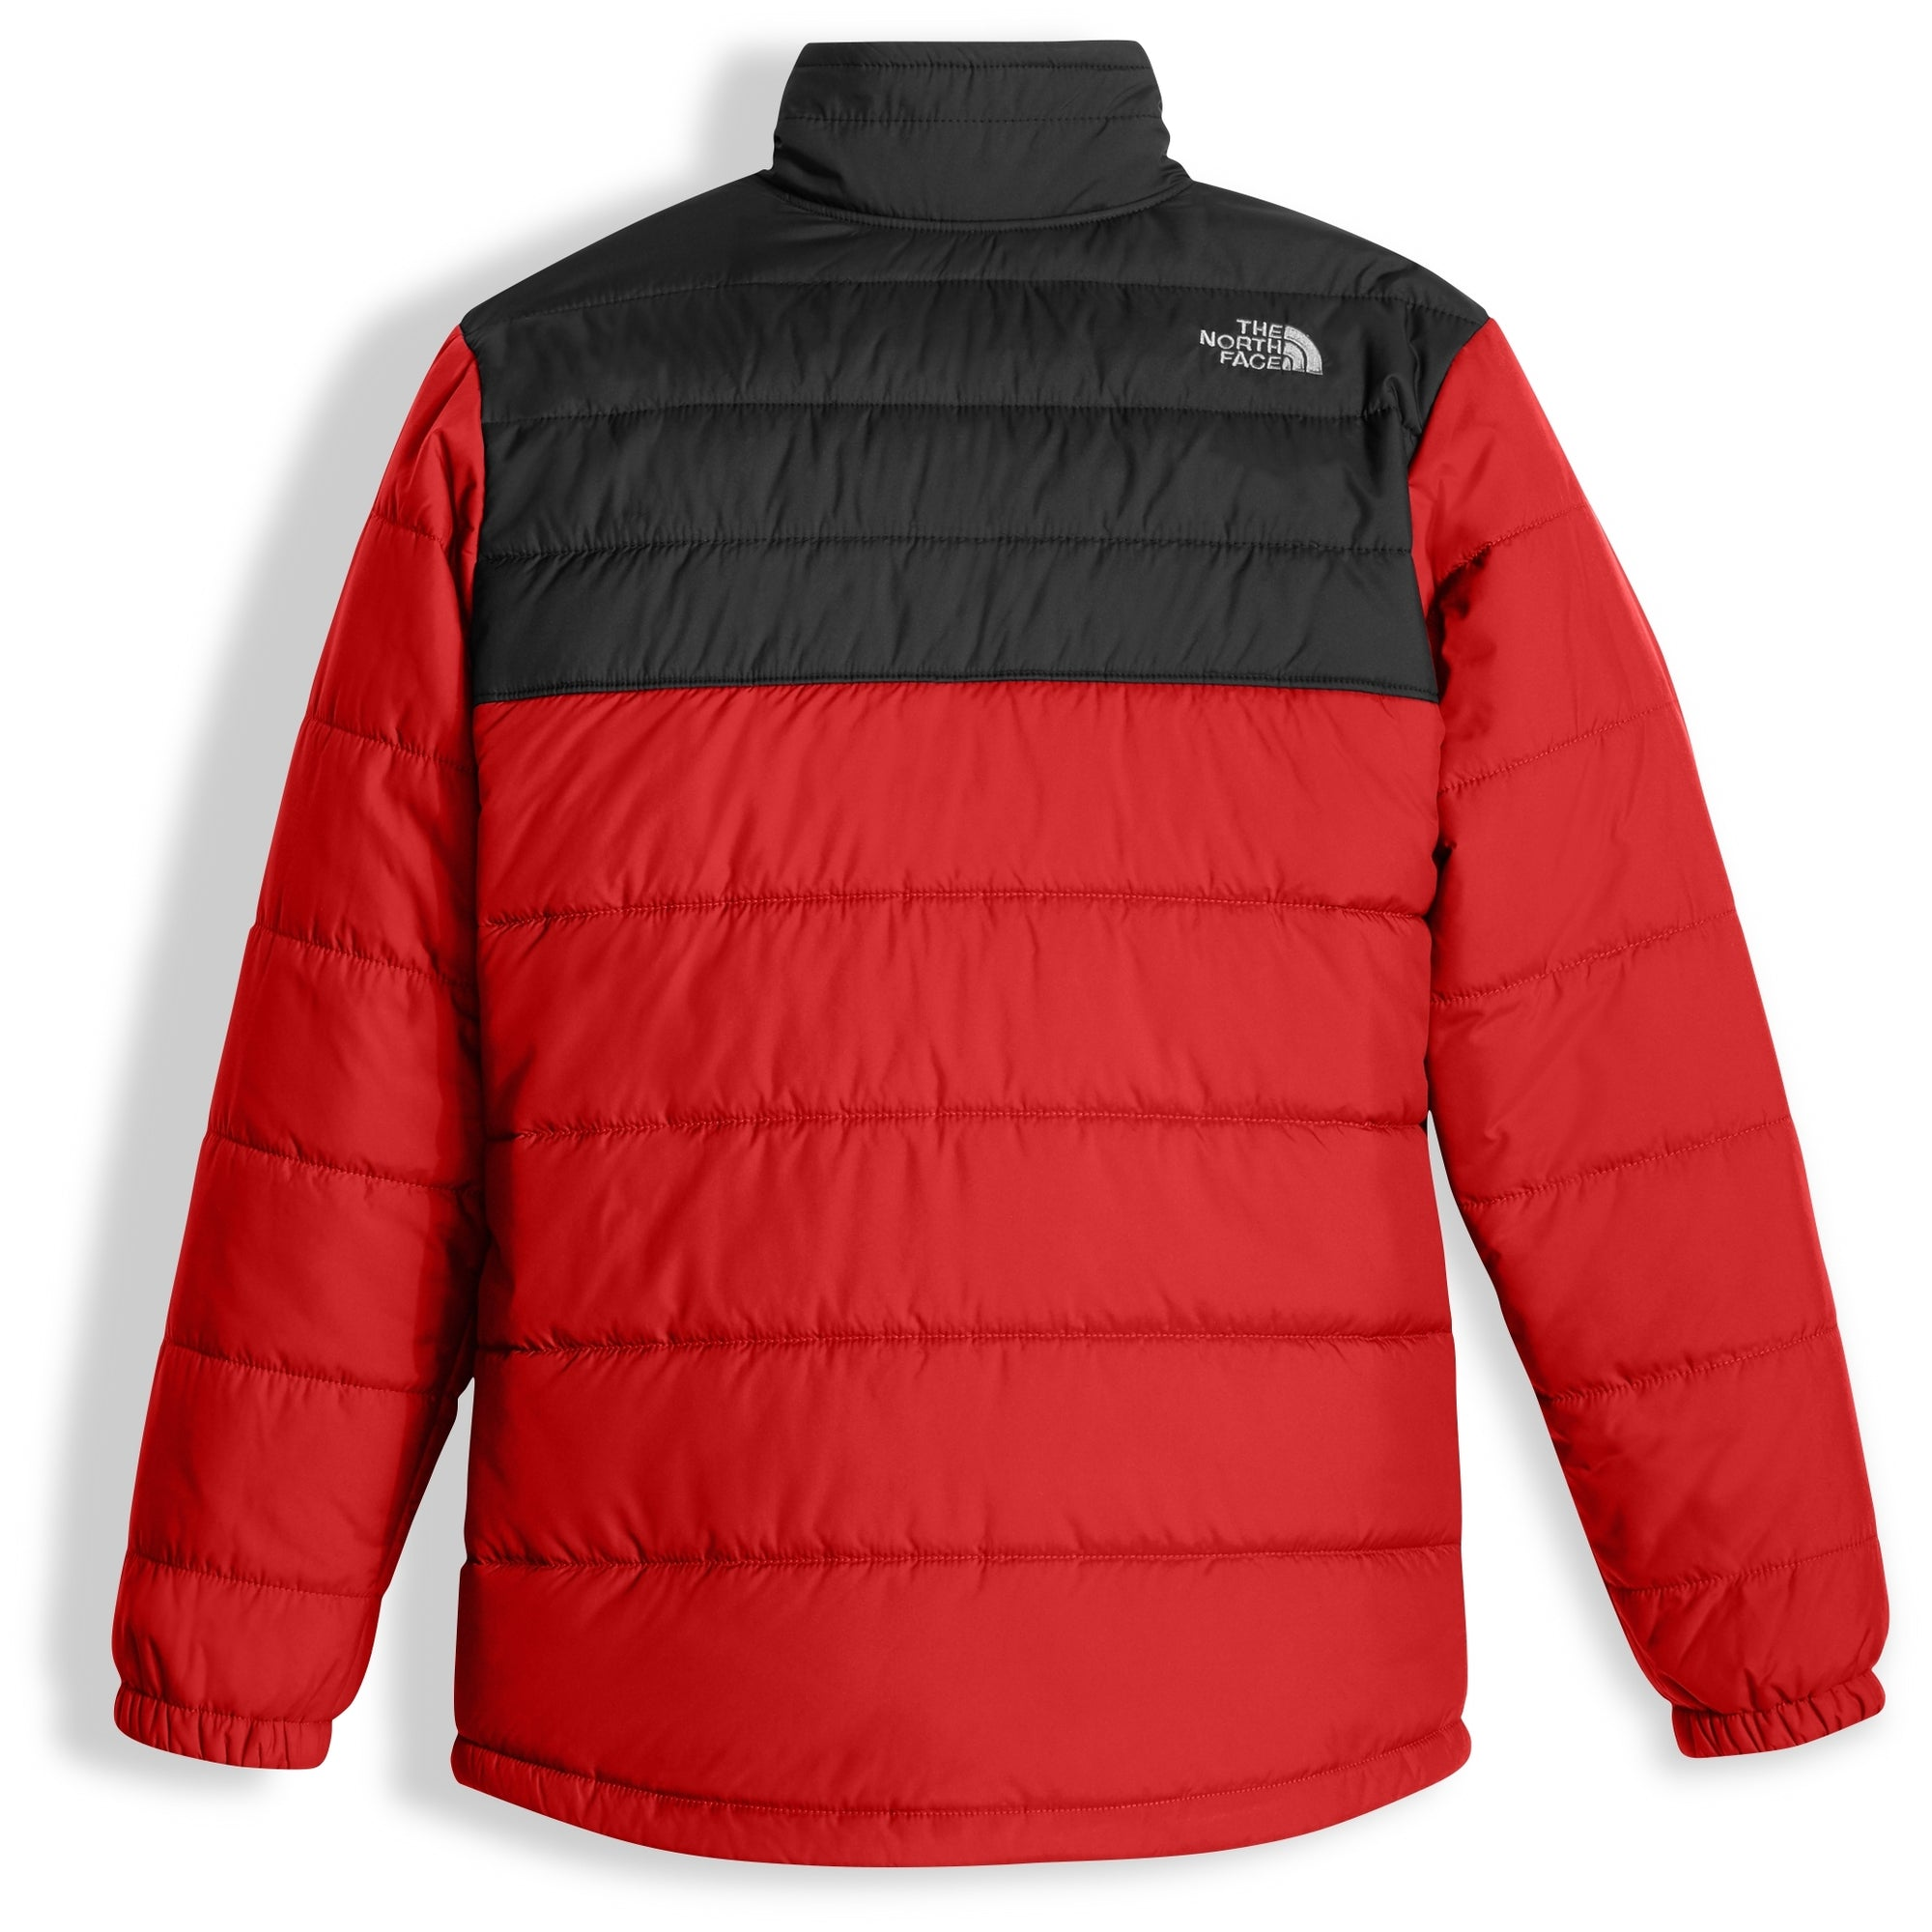 ed1f10614 The North Face Boys' Reversible Mount Chimborazo Jacket - Youth